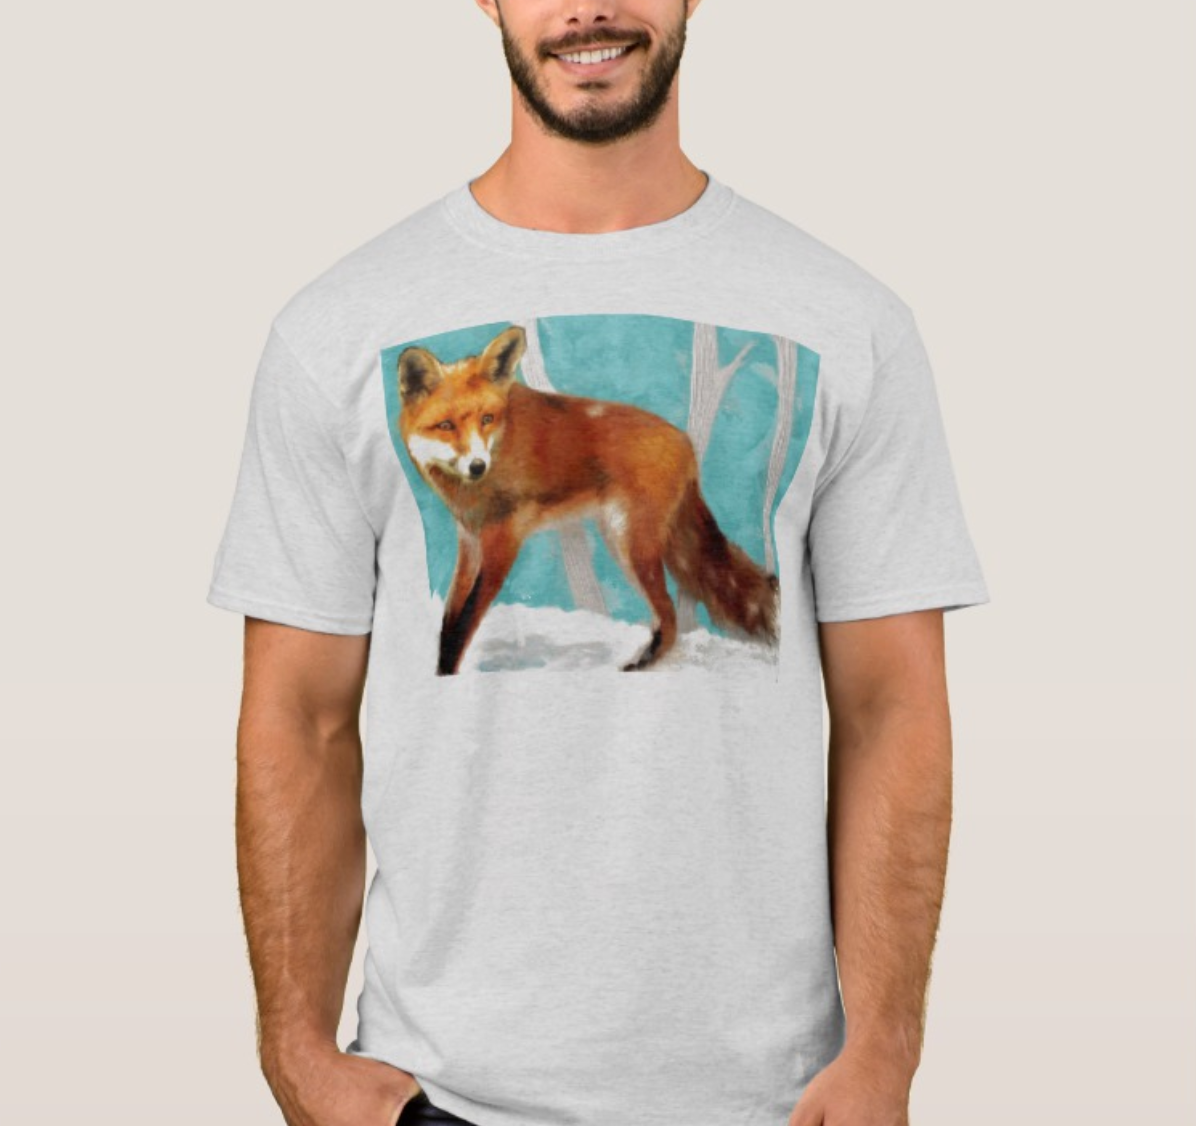 Men T- Shirts with Fox Design